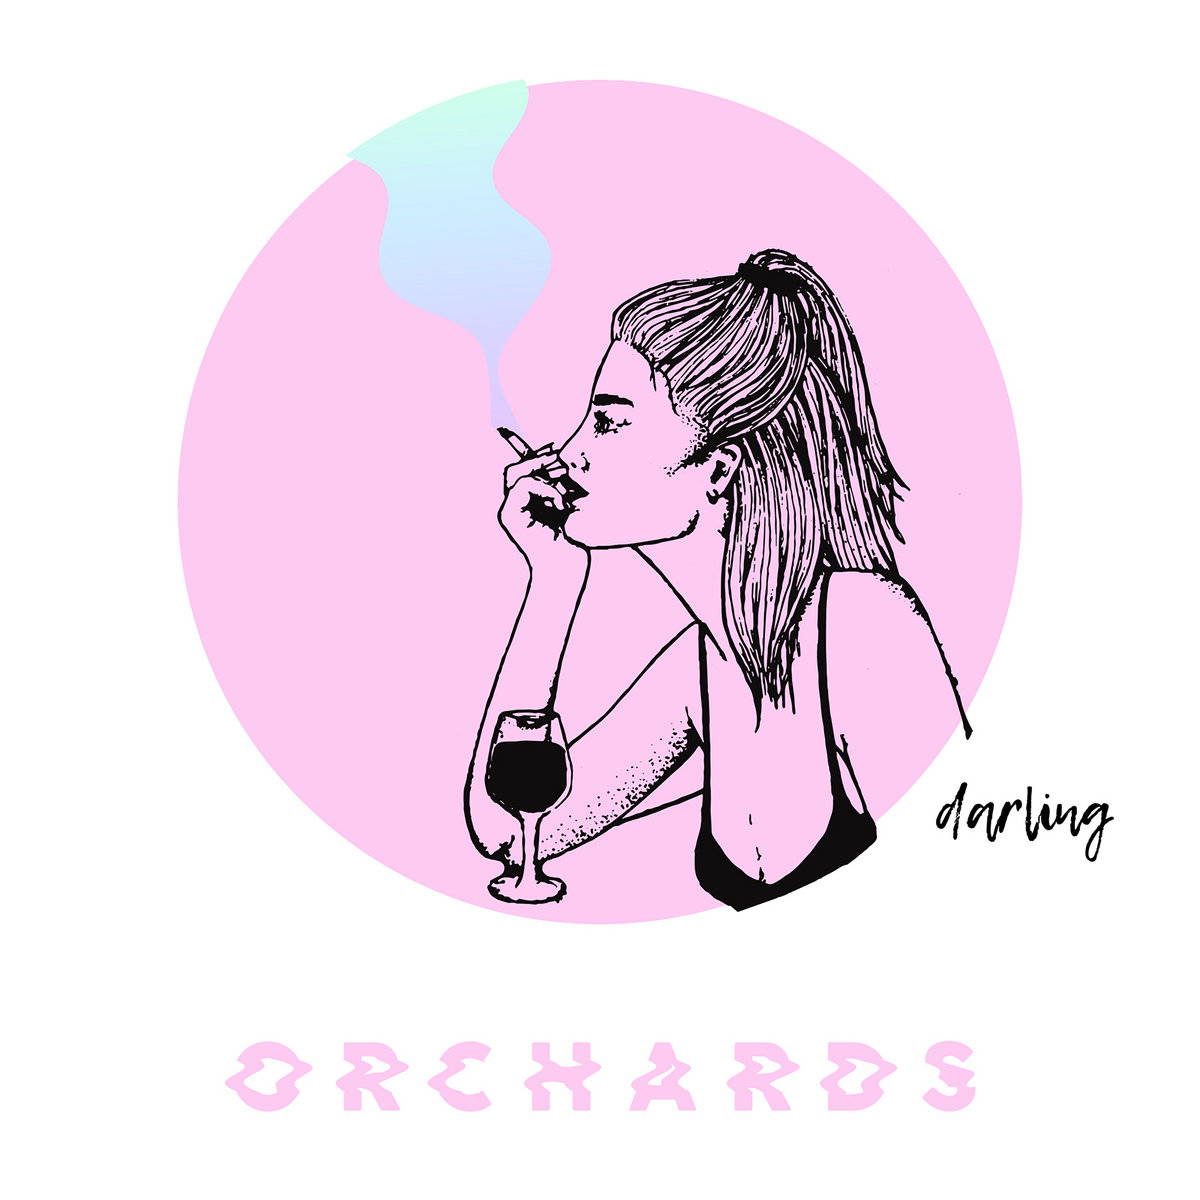 darling orchards